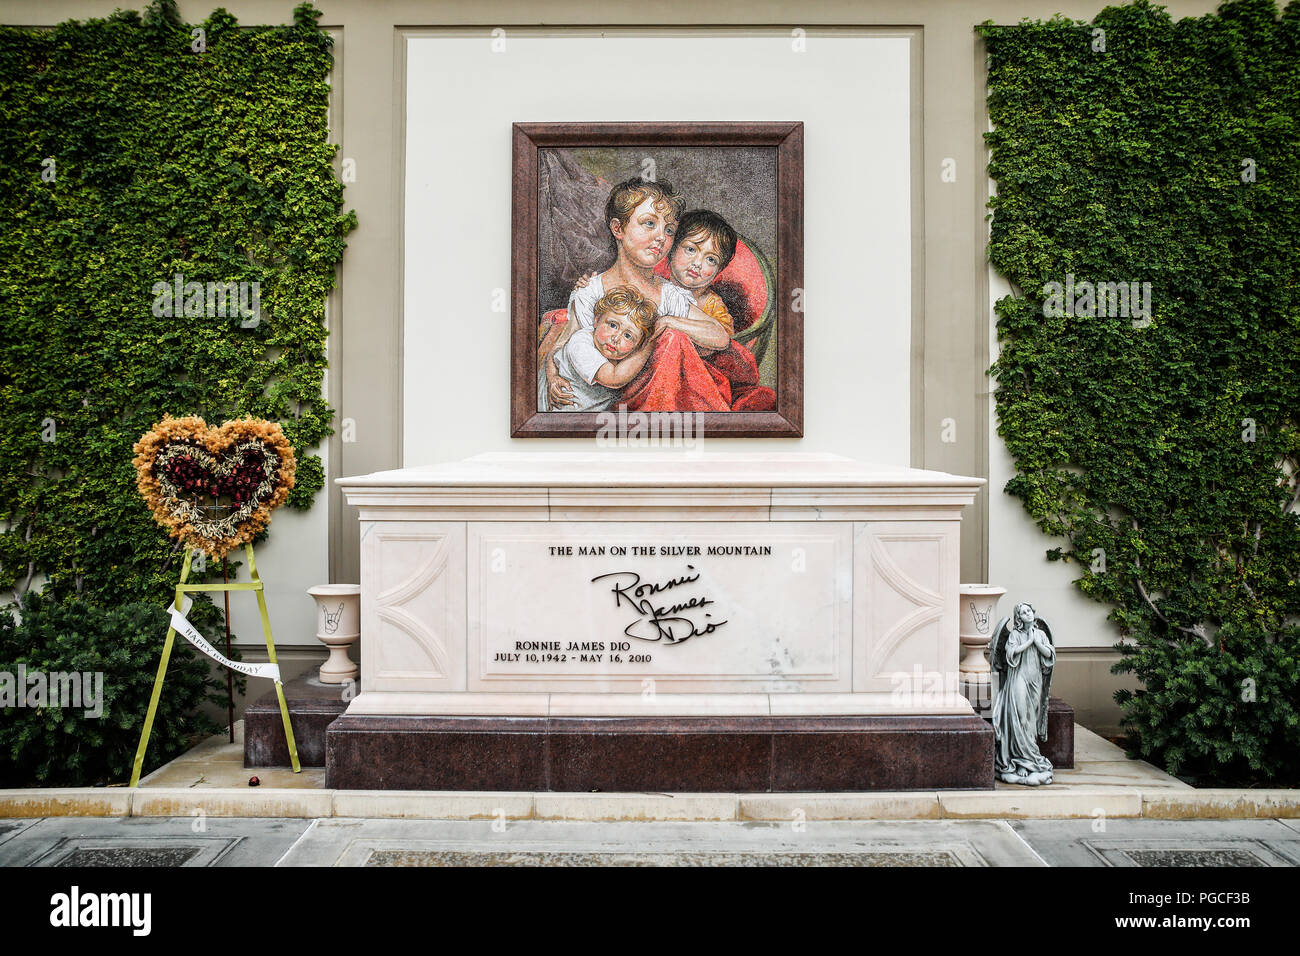 Los Angeles, United States of America - July 24, 2017:  Ronnie James Dio's grave at Forrest Lawn Memorial Park in Glendale. He was playing in several bands like Elf, Rainbow, Black Sabbath, Dio und Heaven and Hell. - Stock Image